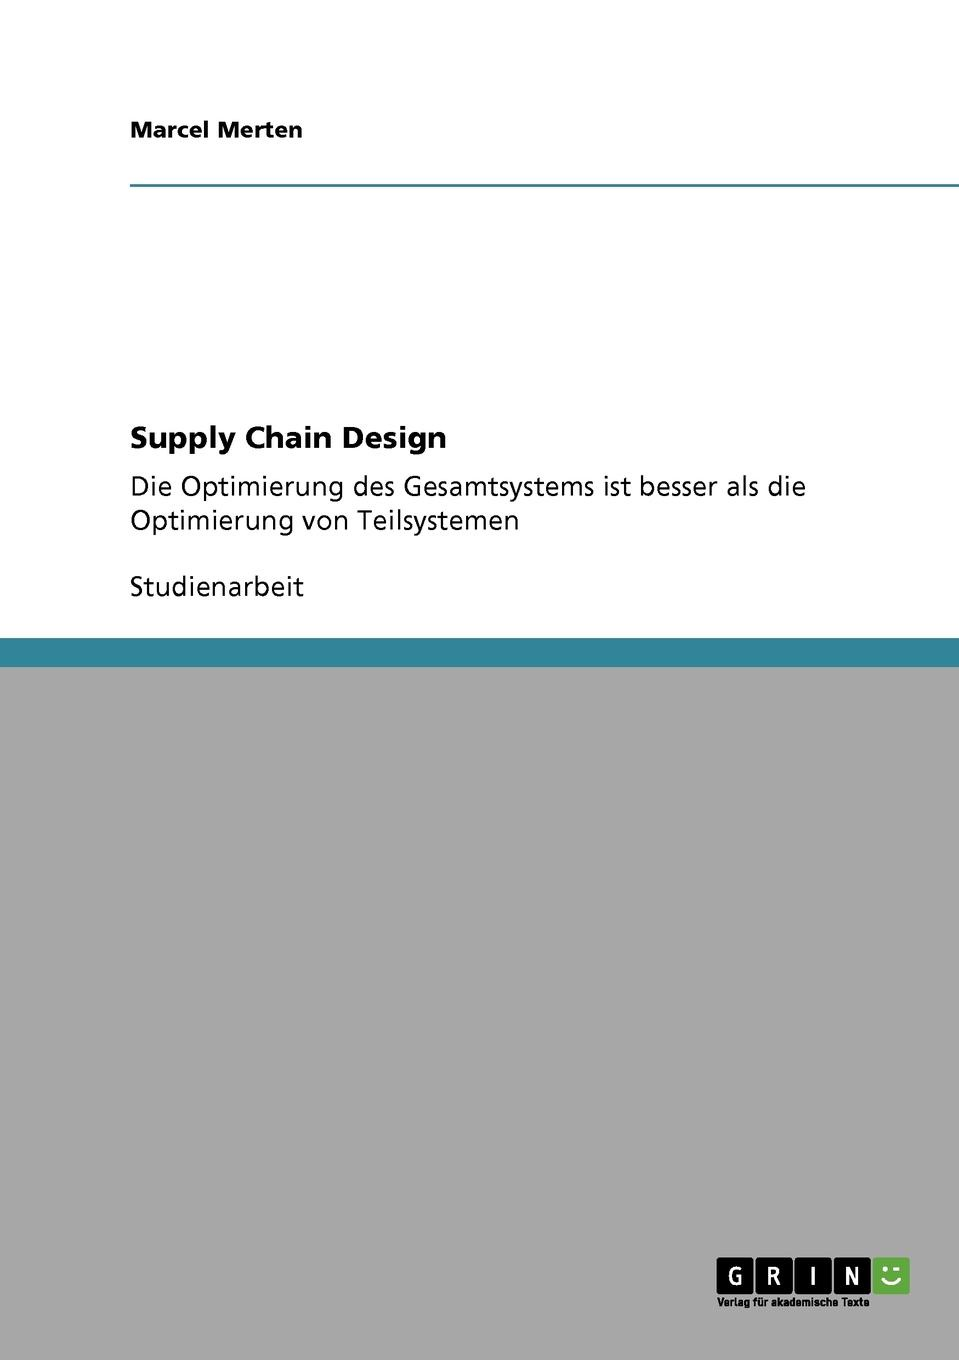 Marcel Merten Supply Chain Design besser als sex berlin